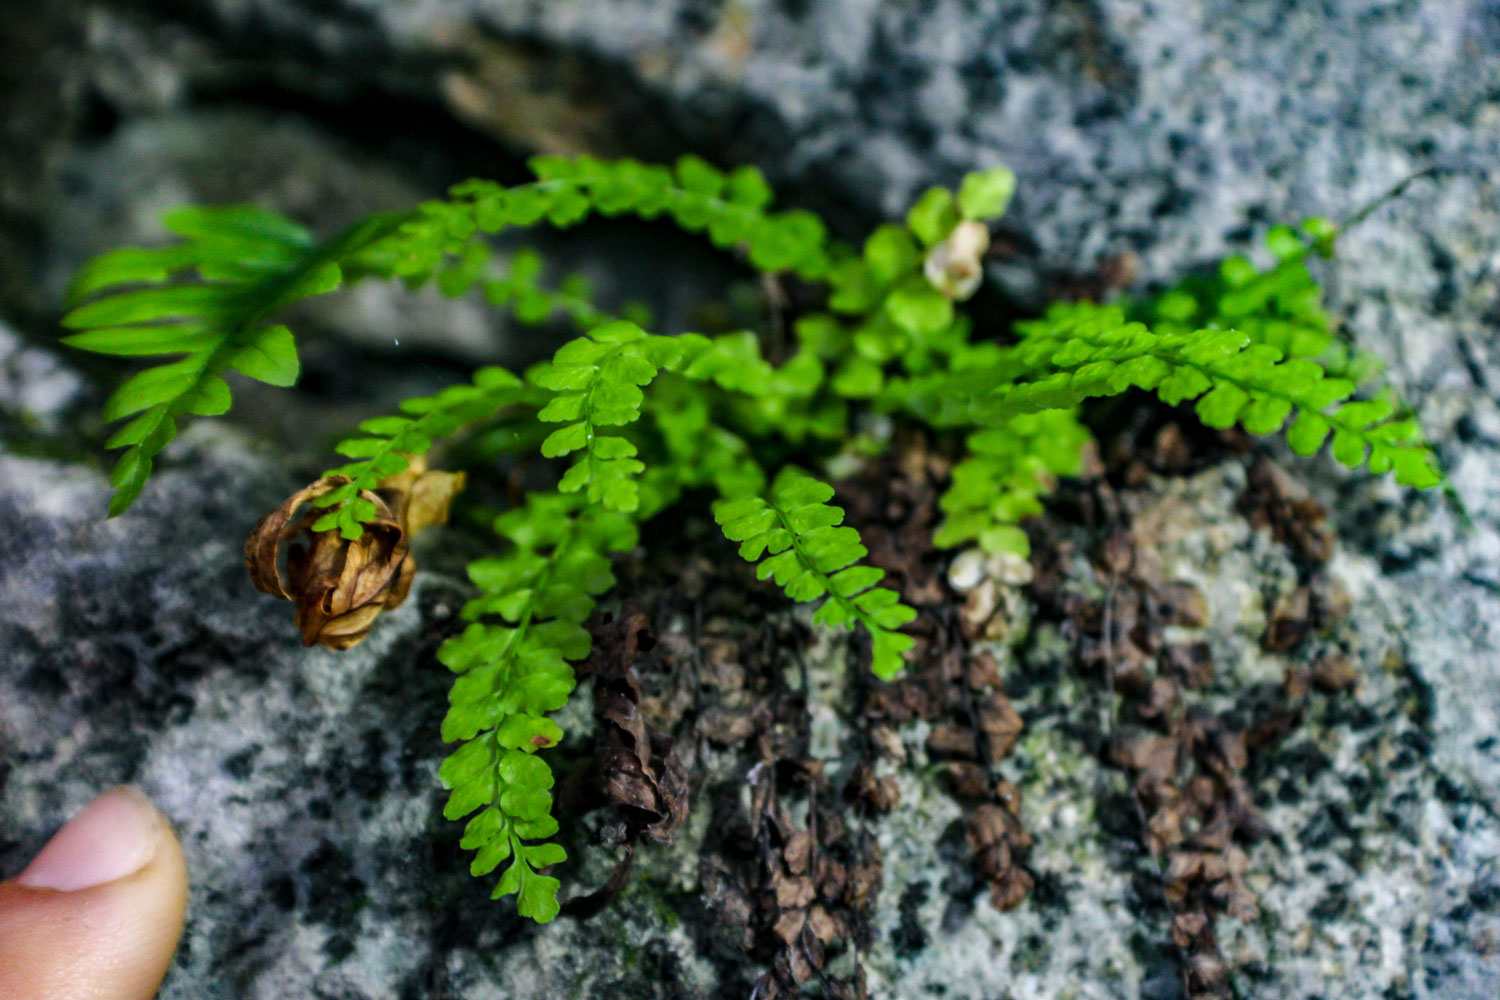 Caves often provide a unique habitat for plants and animals. The temperature, shade, and even rock composition can all allow for unique micro conditions. El Capitan Cave is no different. Pictured is a specimen of Green Spleenwort located just outside the entrance. This is a type of fern that prefers calcium-rich rock. The fingertip is included for a sense of scale. Photo by Brooke Kubby.